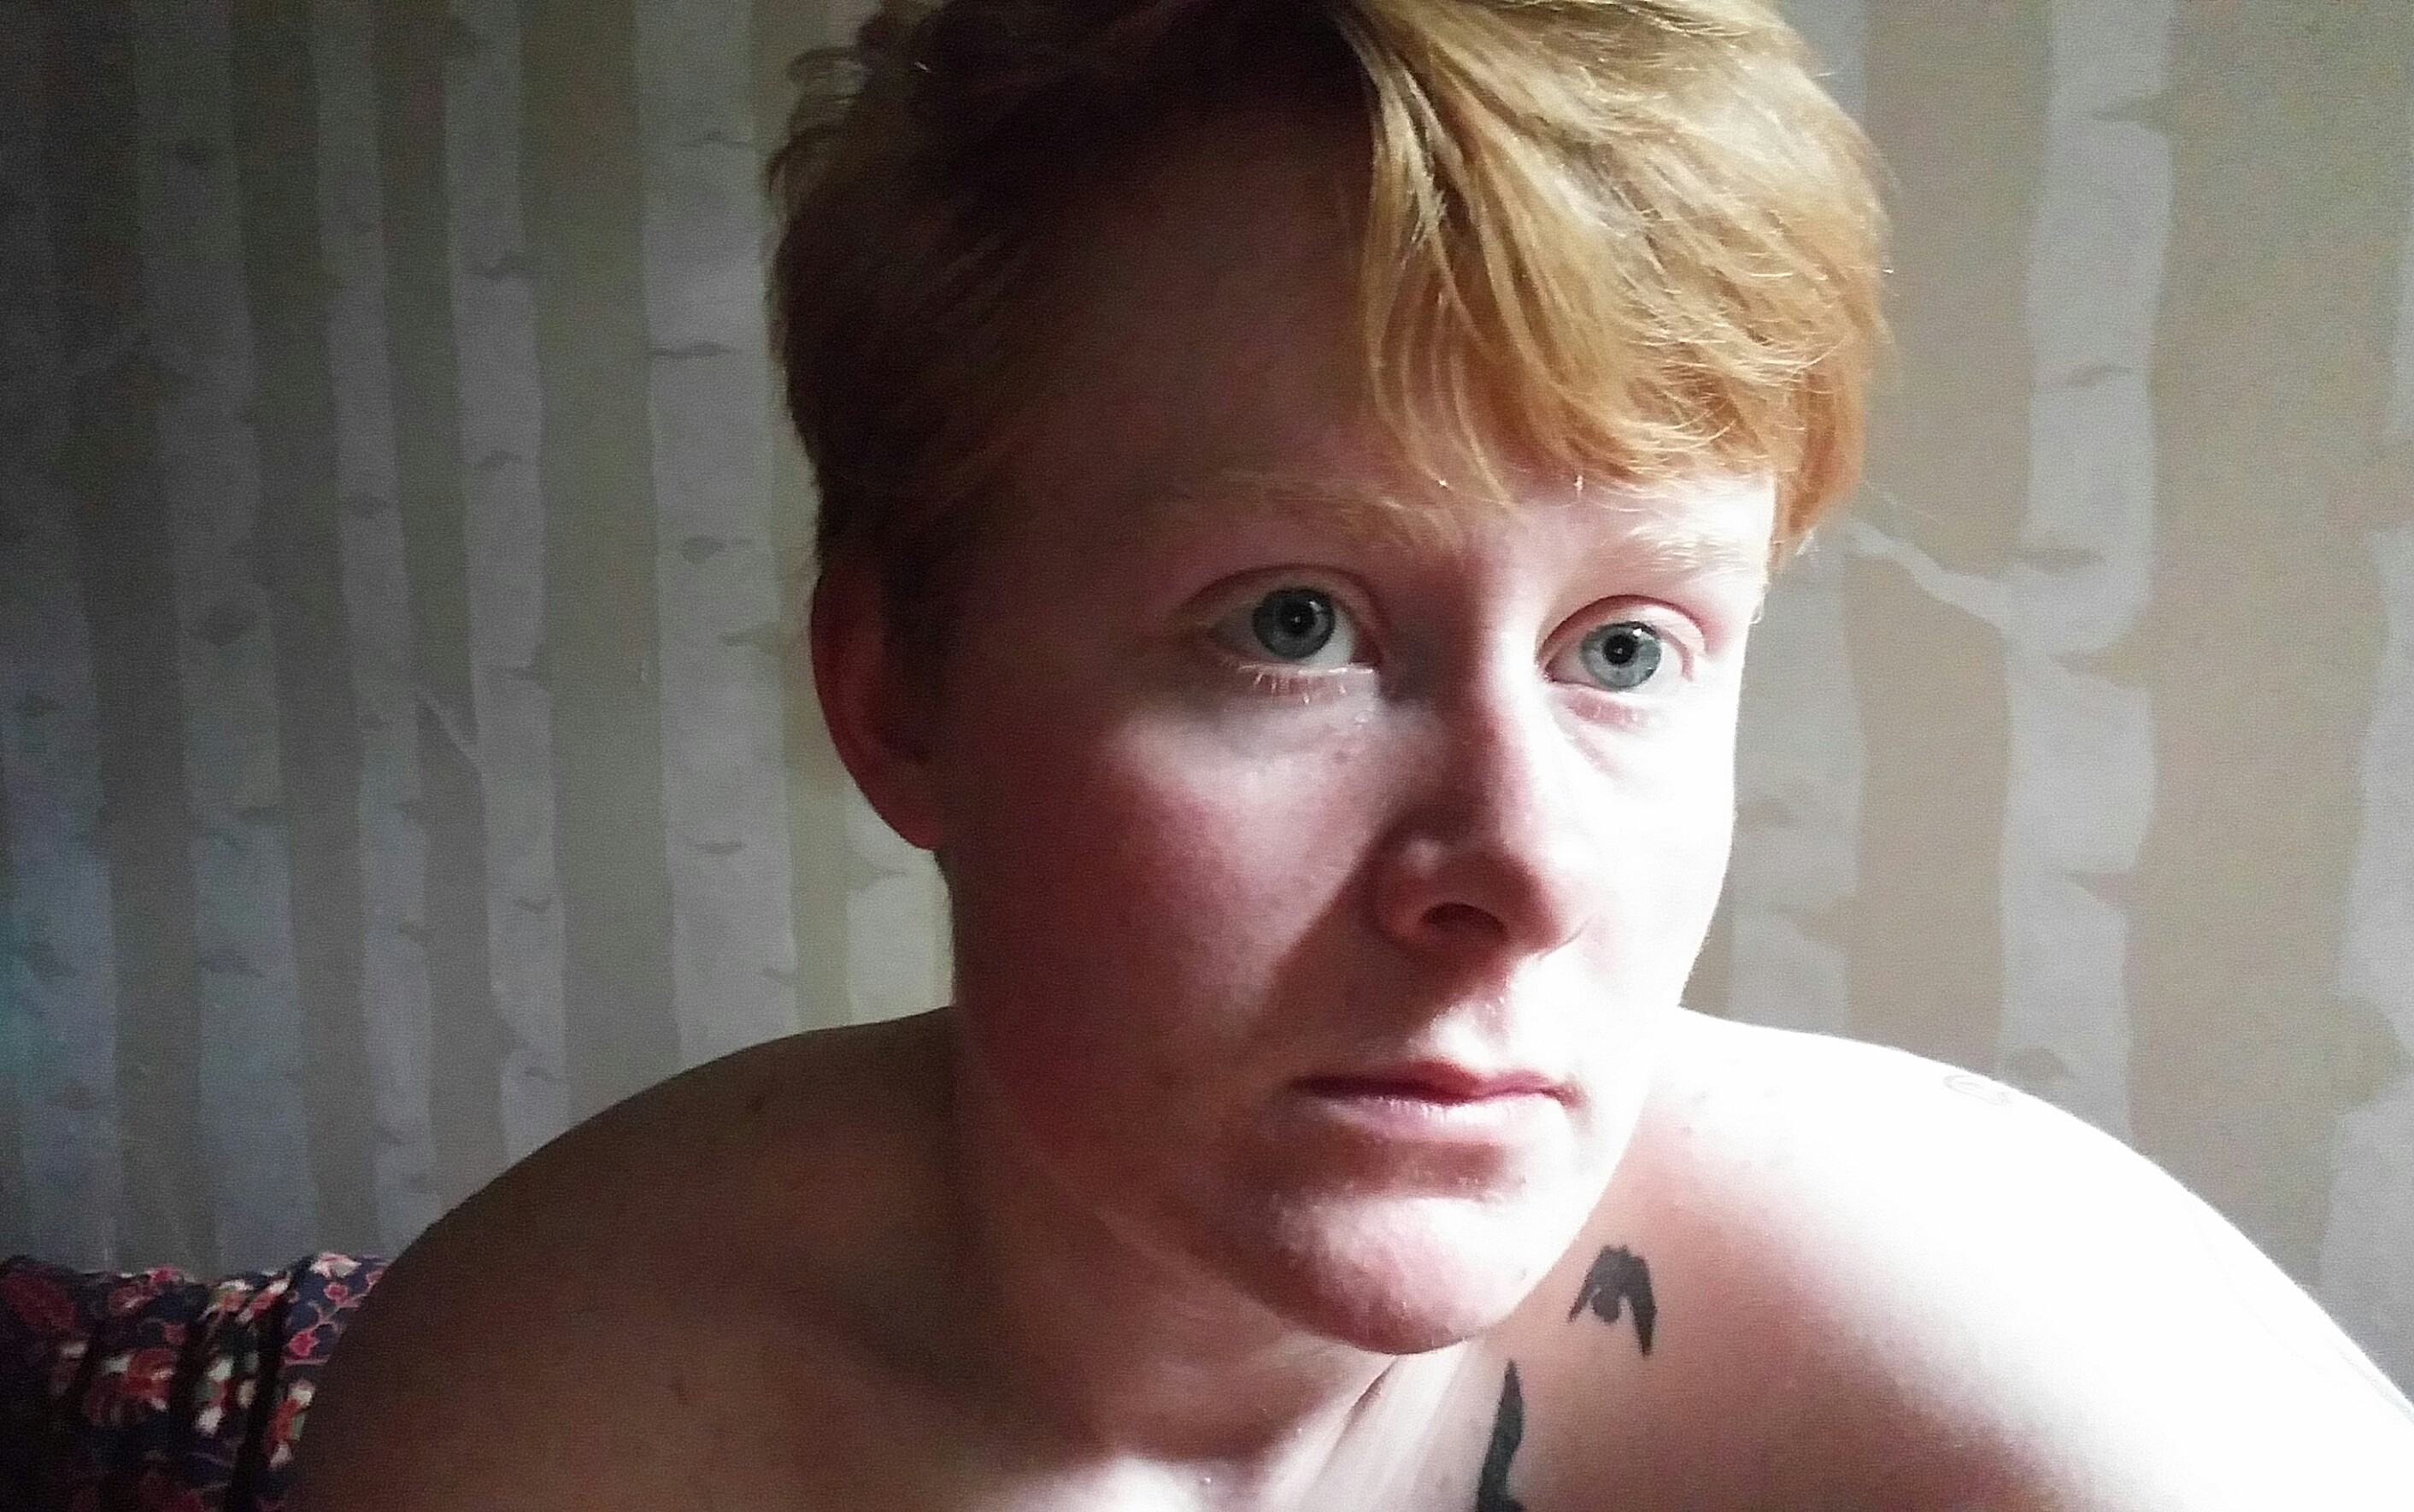 Head-to-shoulders picture of Sage, a non-binary person with short red hair, looking off to the right with a serious expression. Their shoulders are bare and there are birch trees painted on the wall behind them.